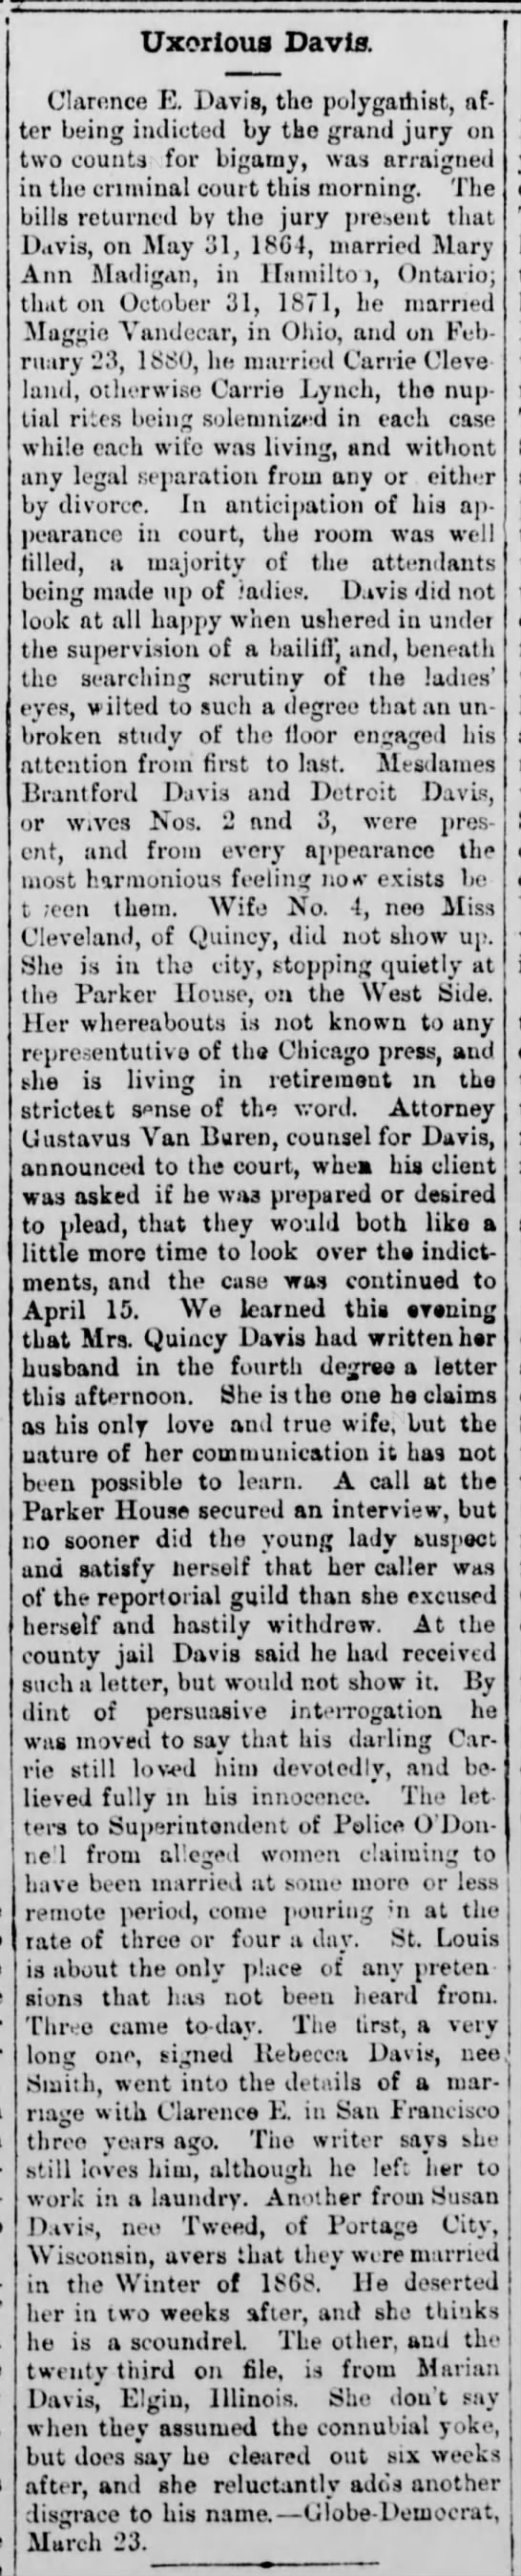 April 22, 1880 The Vancouver Independent (Washington) Uxorious Davis 3 more wives write -